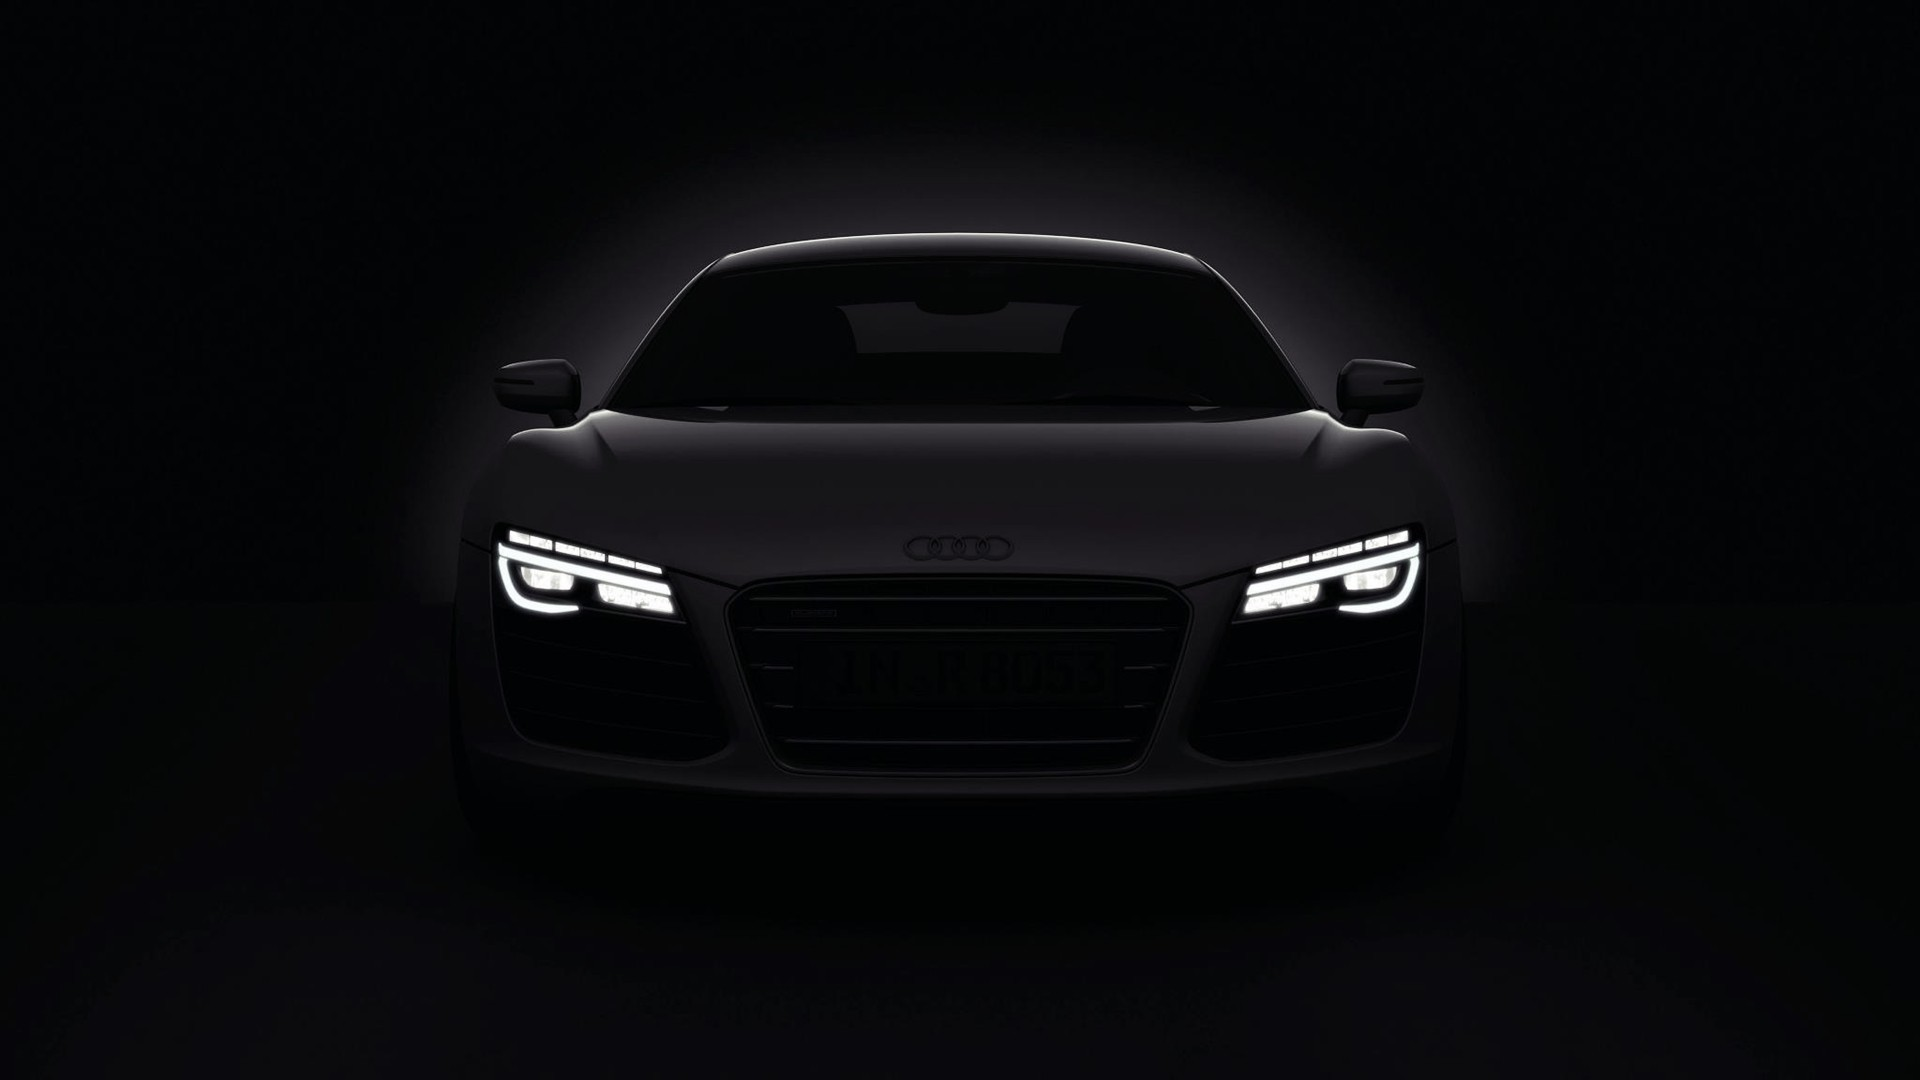 Cars Audi Roads R8 White V10 Wallpaper Allwallpaper In: Voitures Sombres Audi Phares R8 2013 Papier Peint